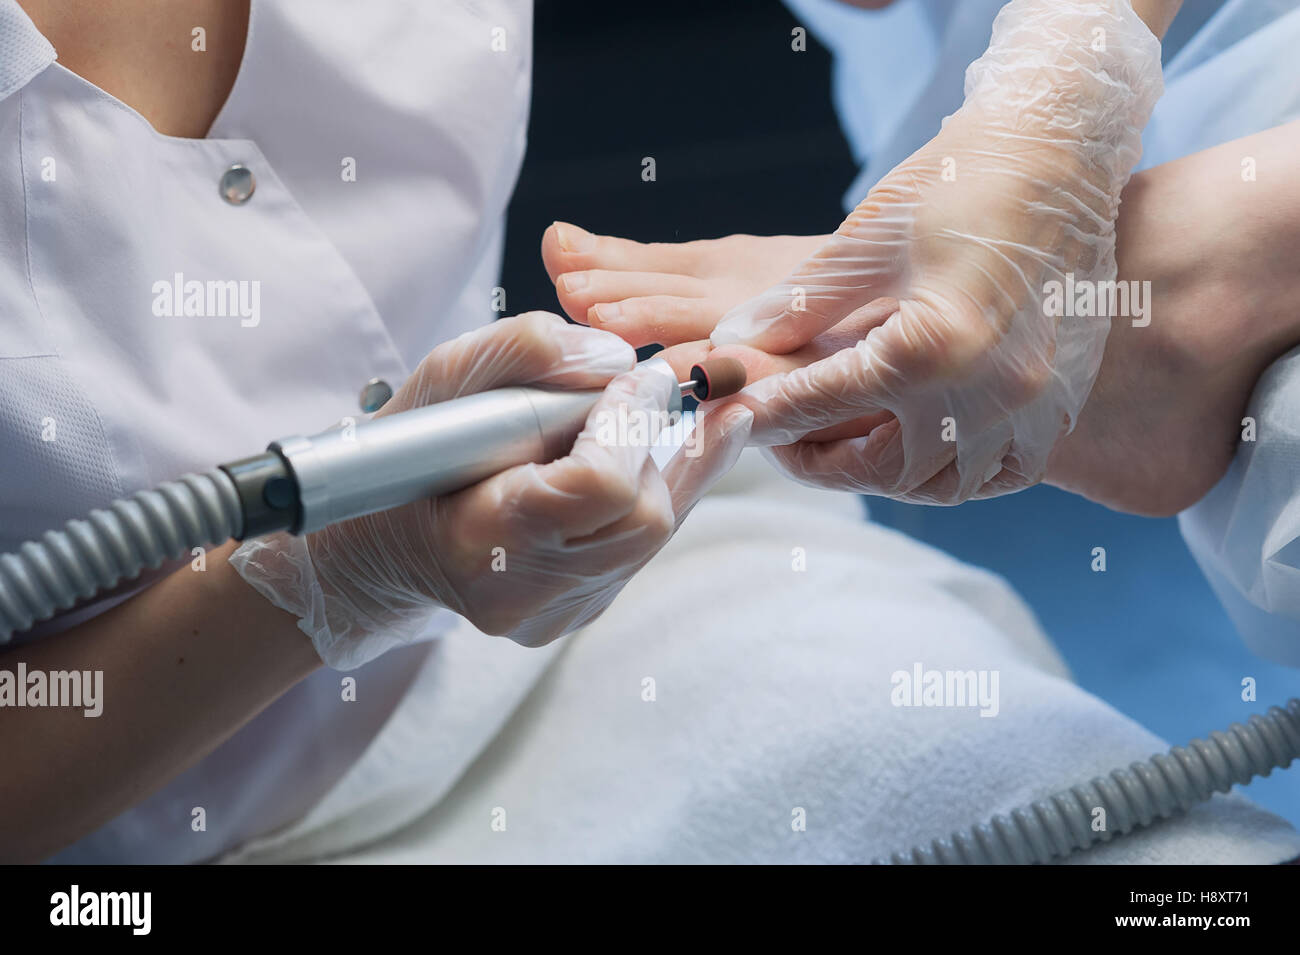 profesional nail technician sanding nails with machine - Stock Image